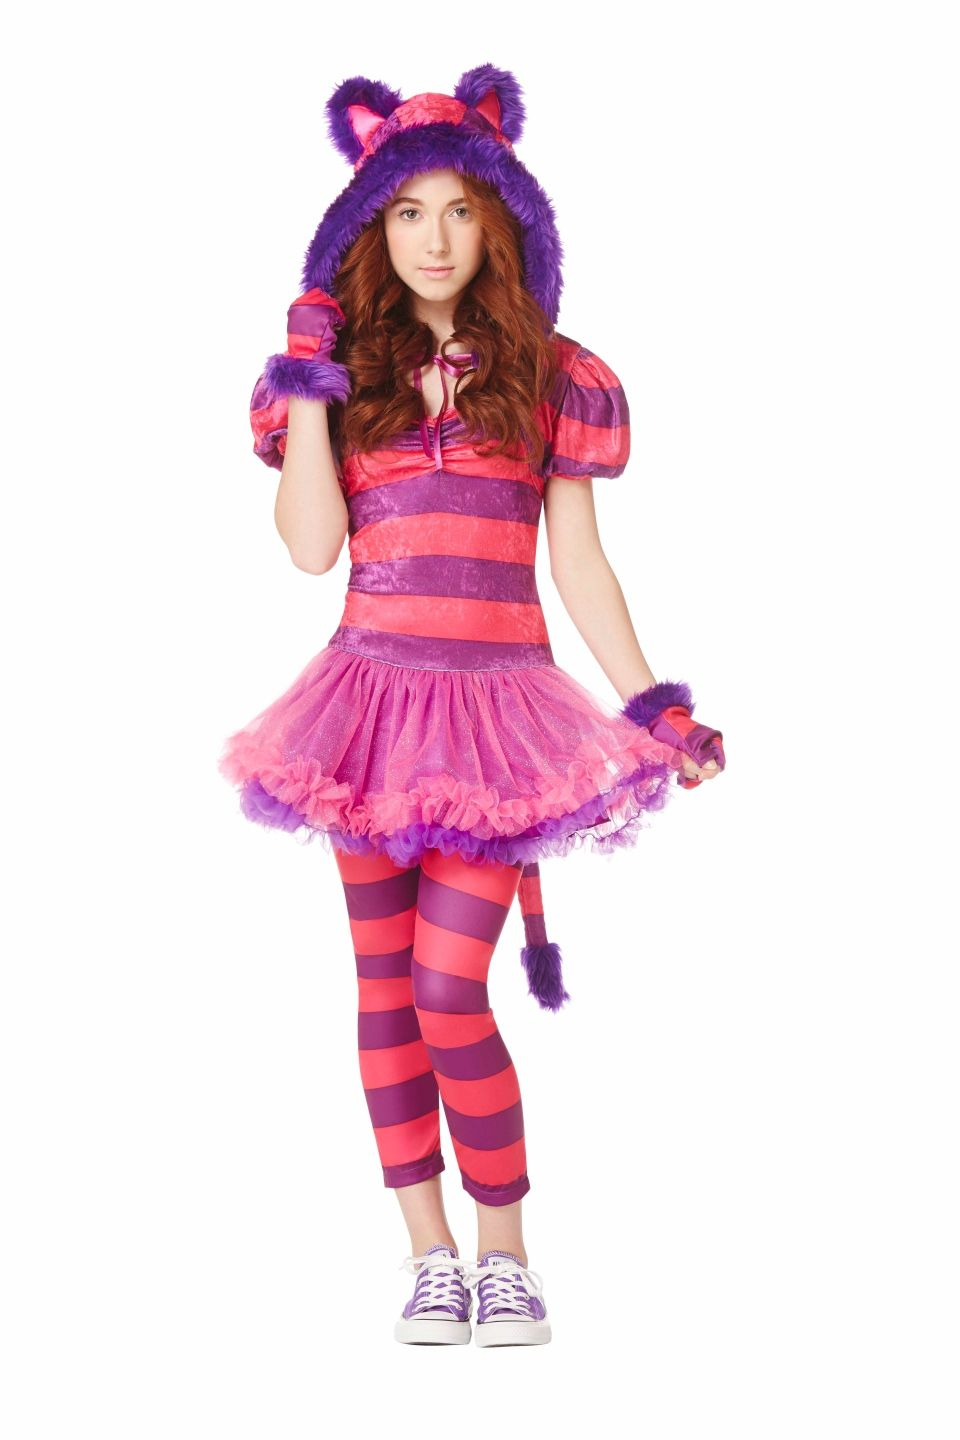 halloween costume ideas for girls age 11, halloween costume ideas